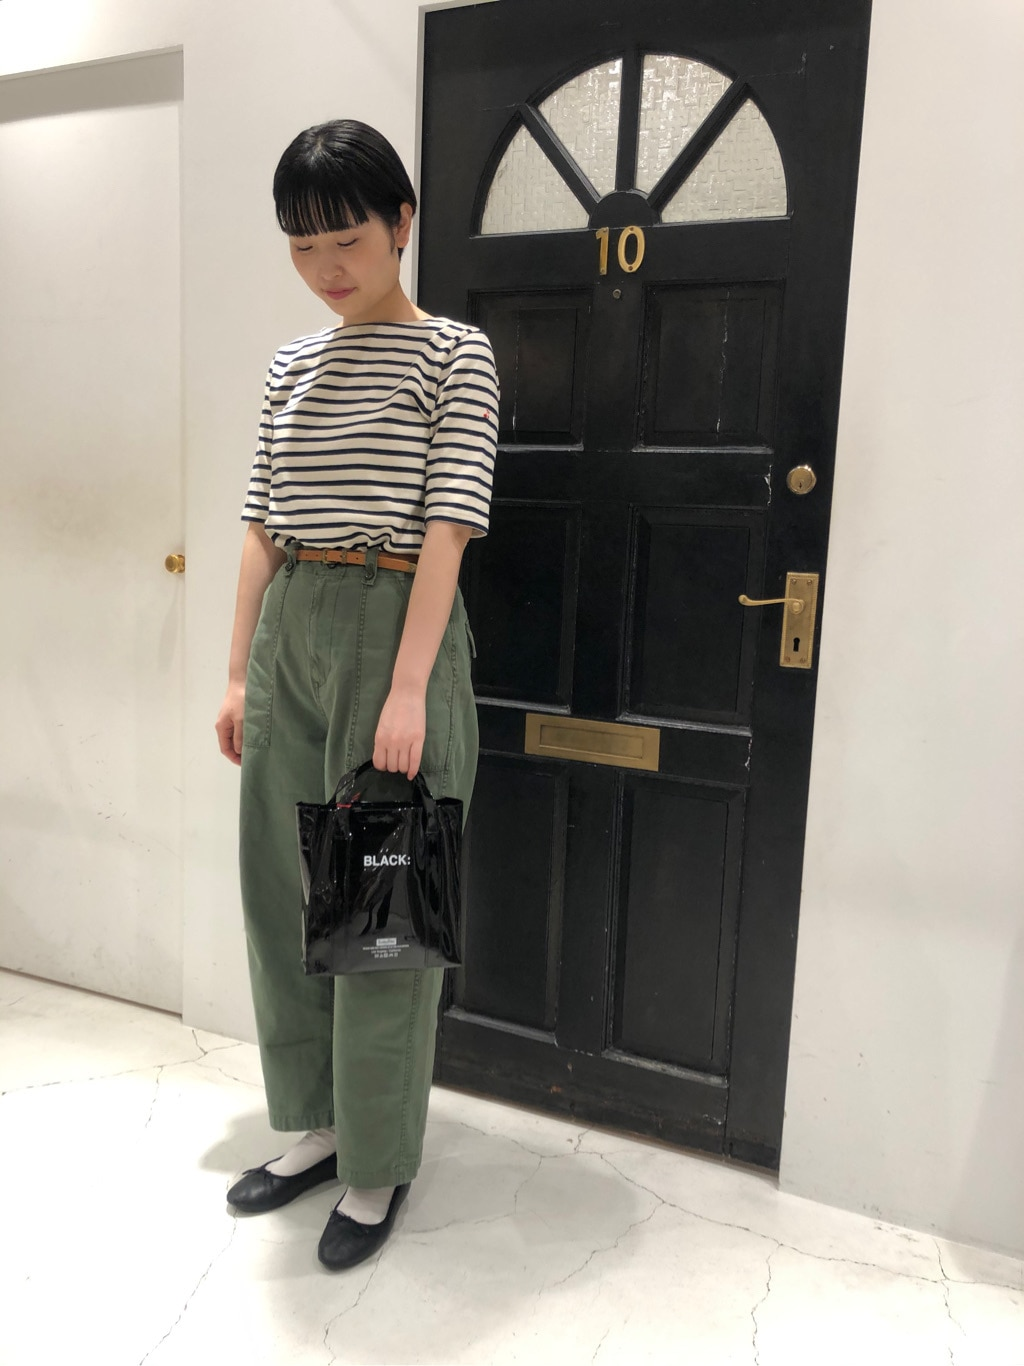 Dot and Stripes CHILD WOMAN ルクアイーレ 身長:165cm 2020.07.03